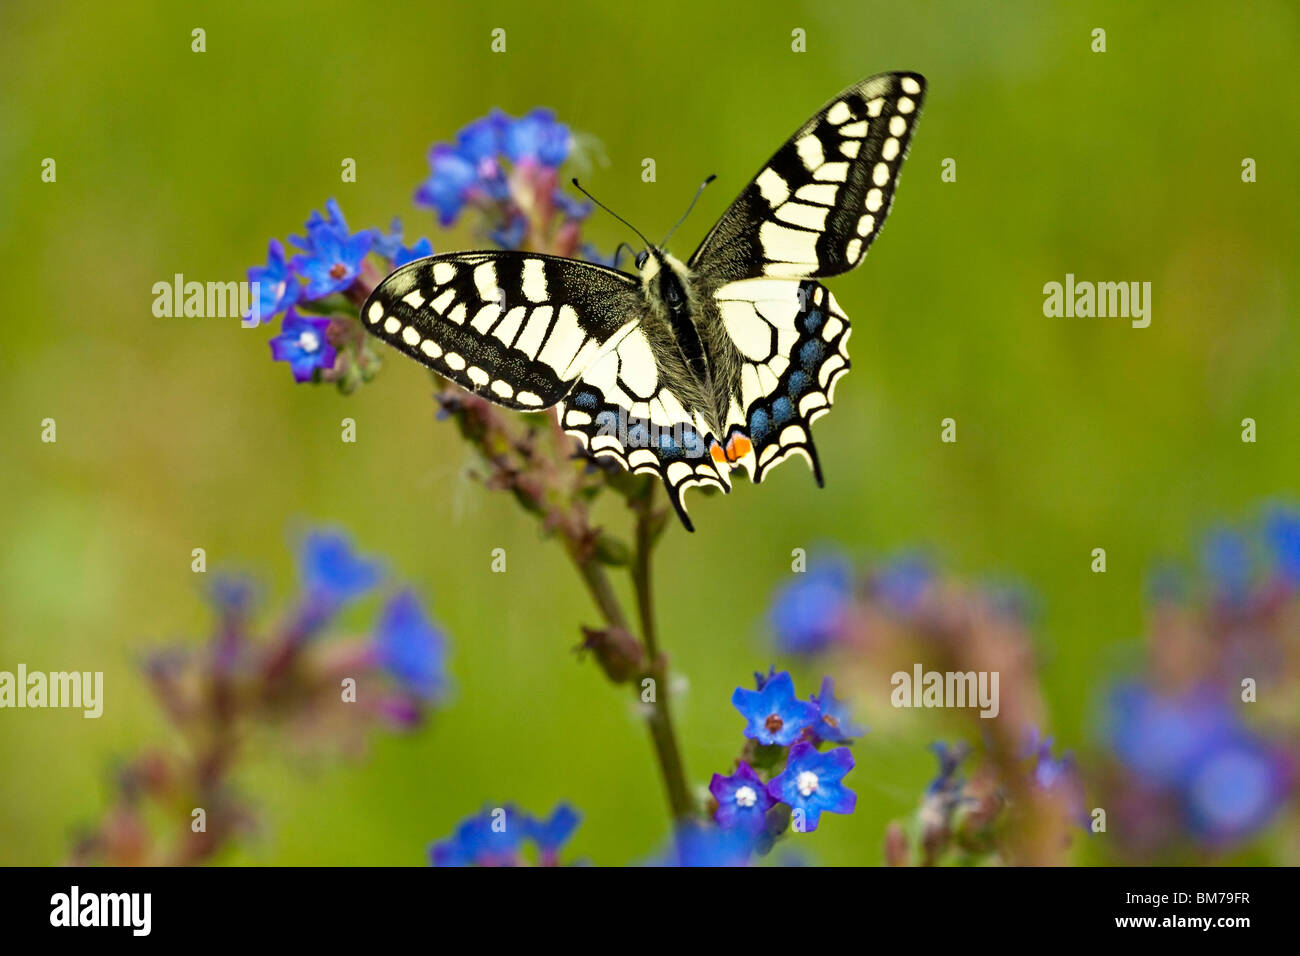 SWALLOWTAIL BUTTERFLY (Papilio machaon). - Stock Image